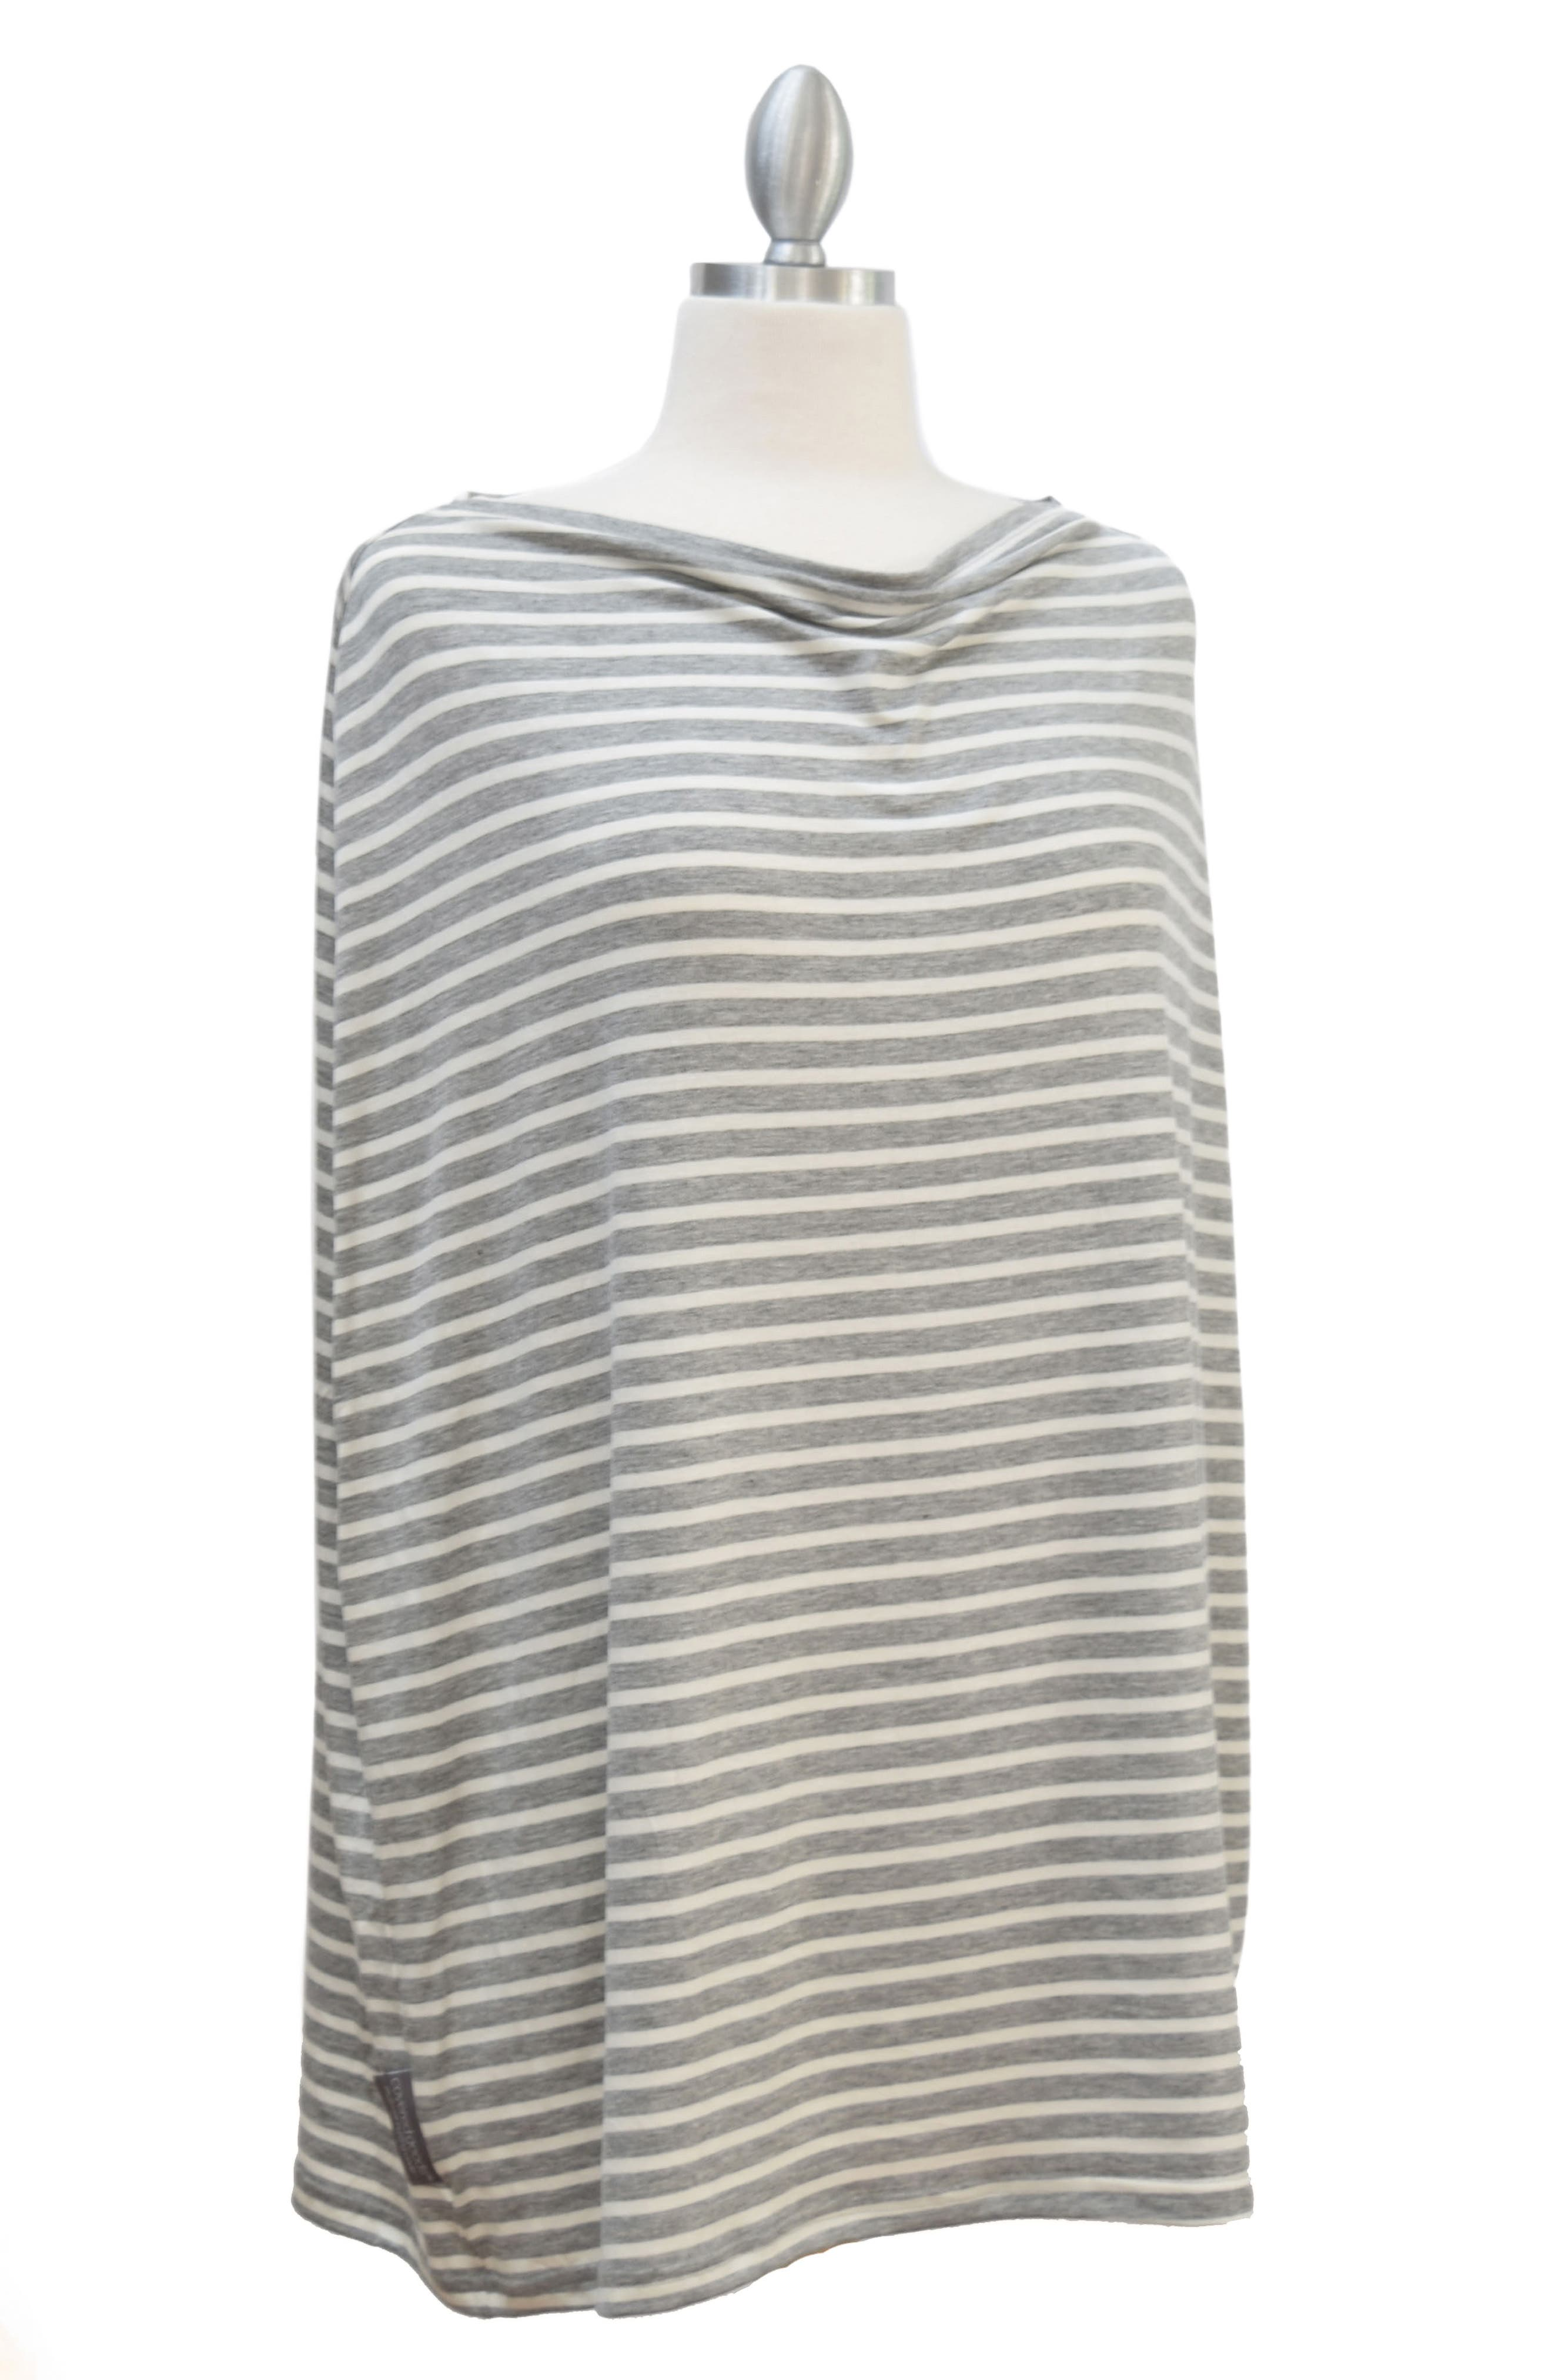 Infant Covered Goods 4In1 Nursing Cover Size One Size  Grey